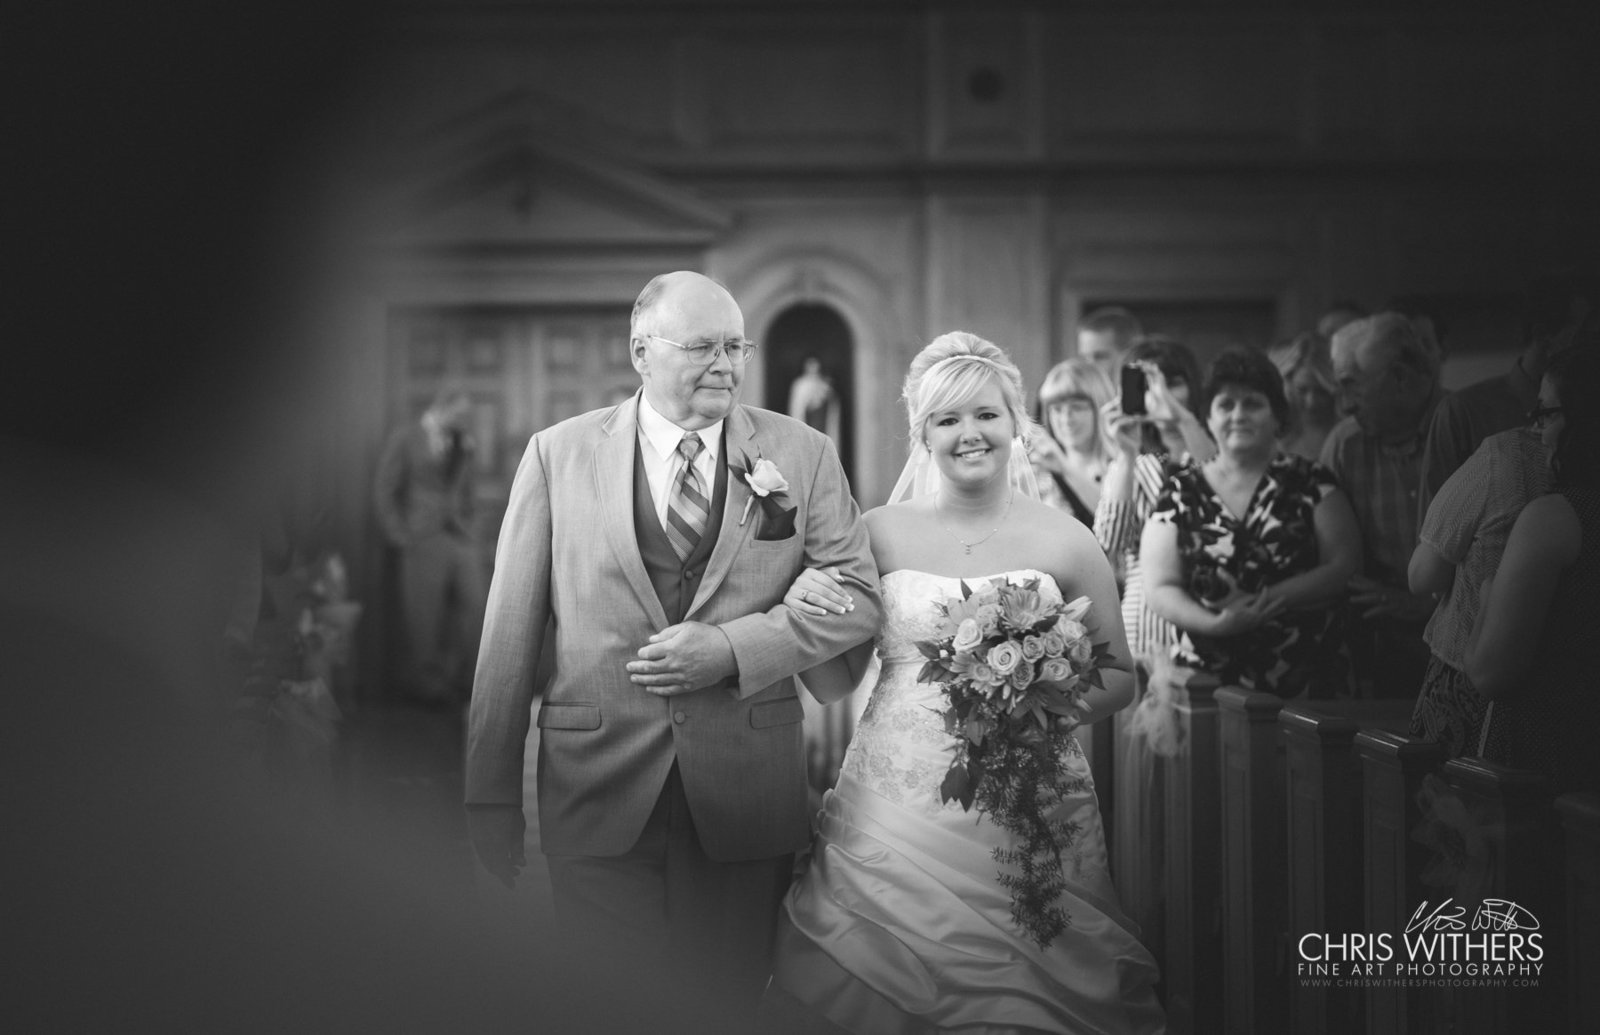 Springfield Illinois Wedding Photographer - Chris Withers Photography (13 of 159)